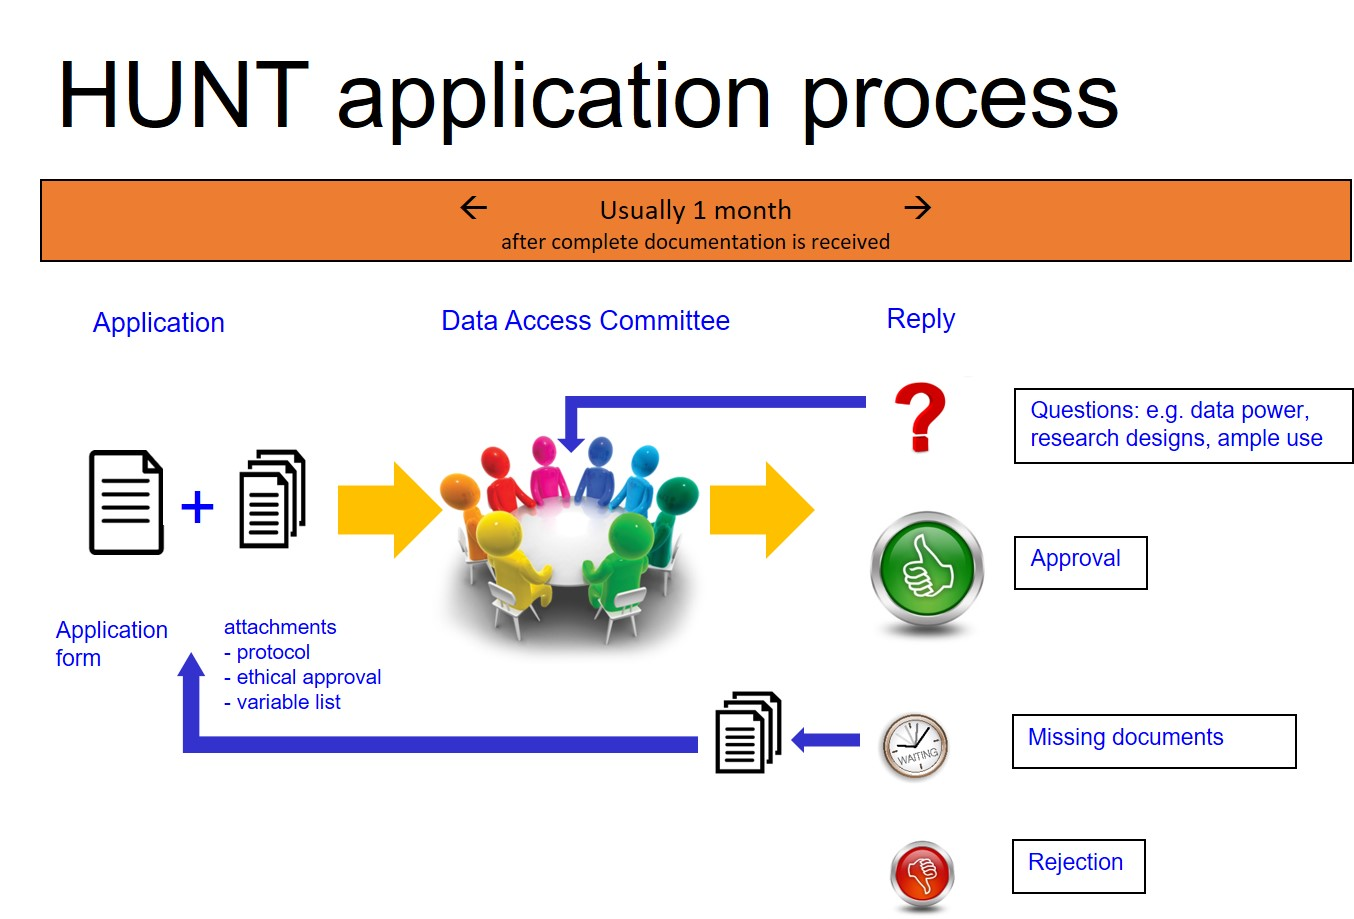 HUNT application process in picture